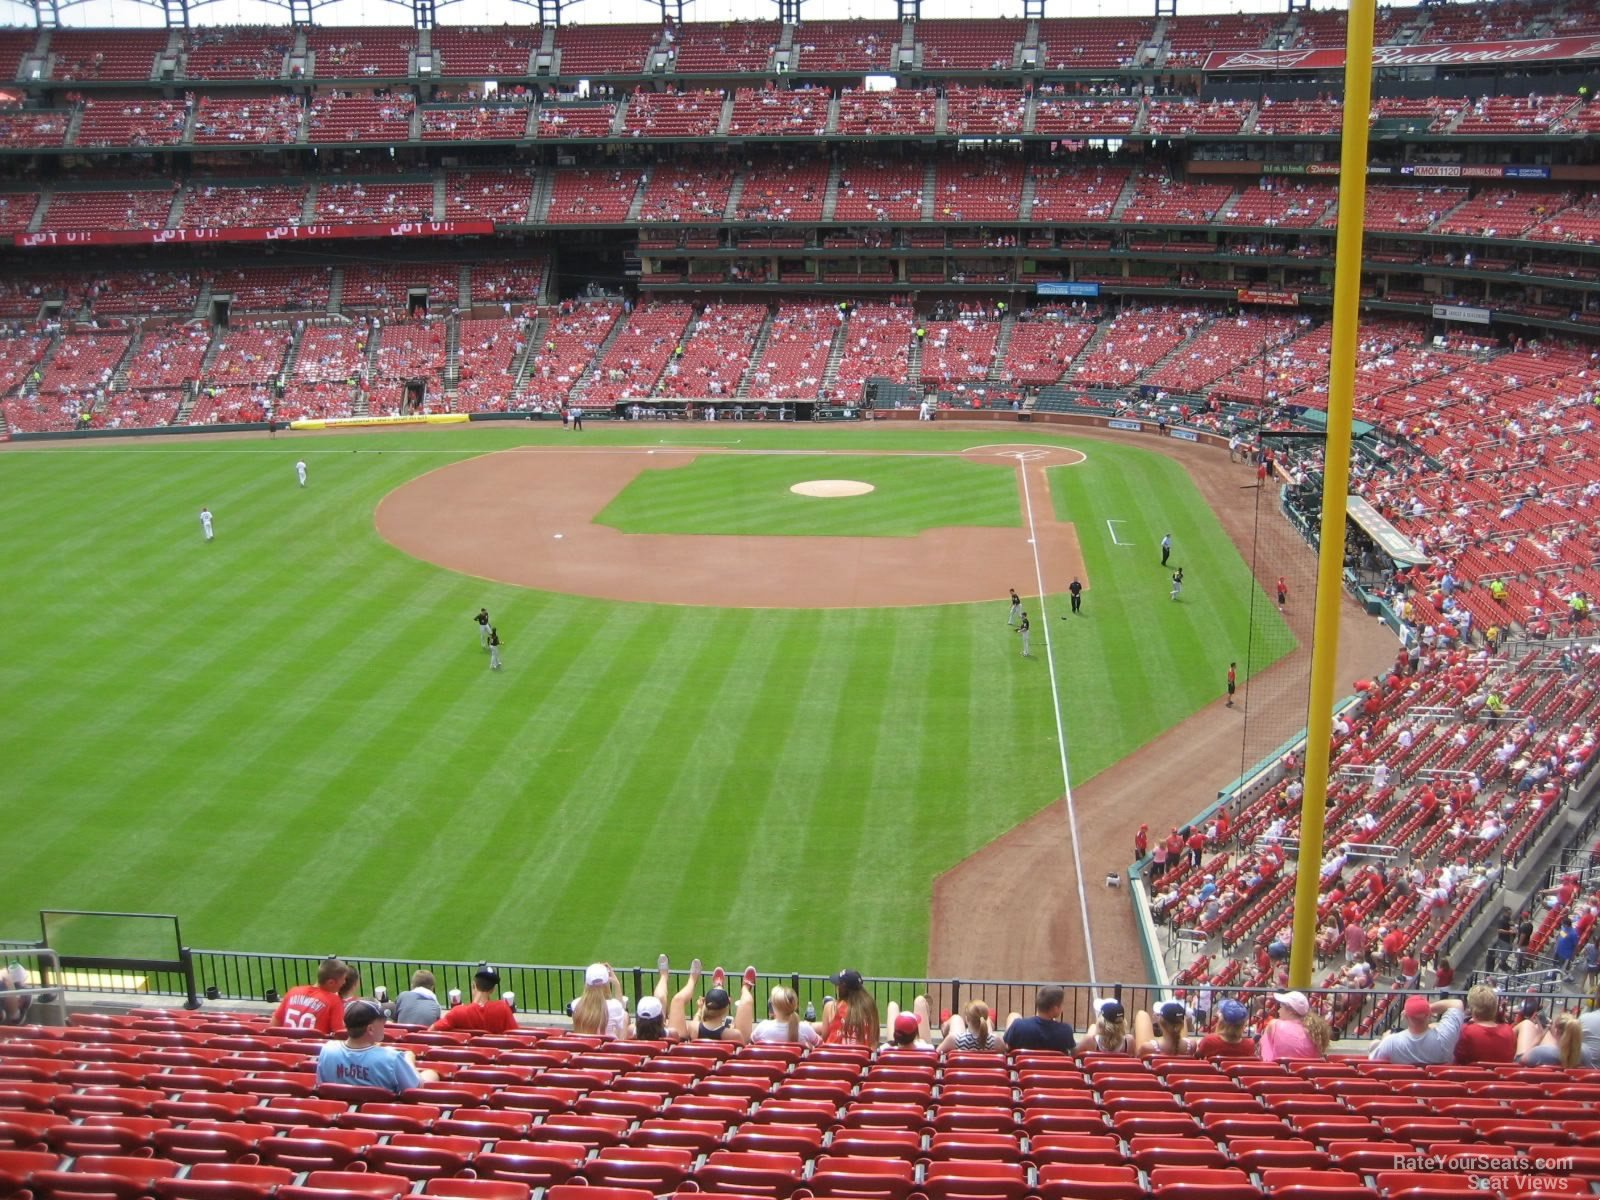 Busch Stadium Section 271 - RateYourSeats.com